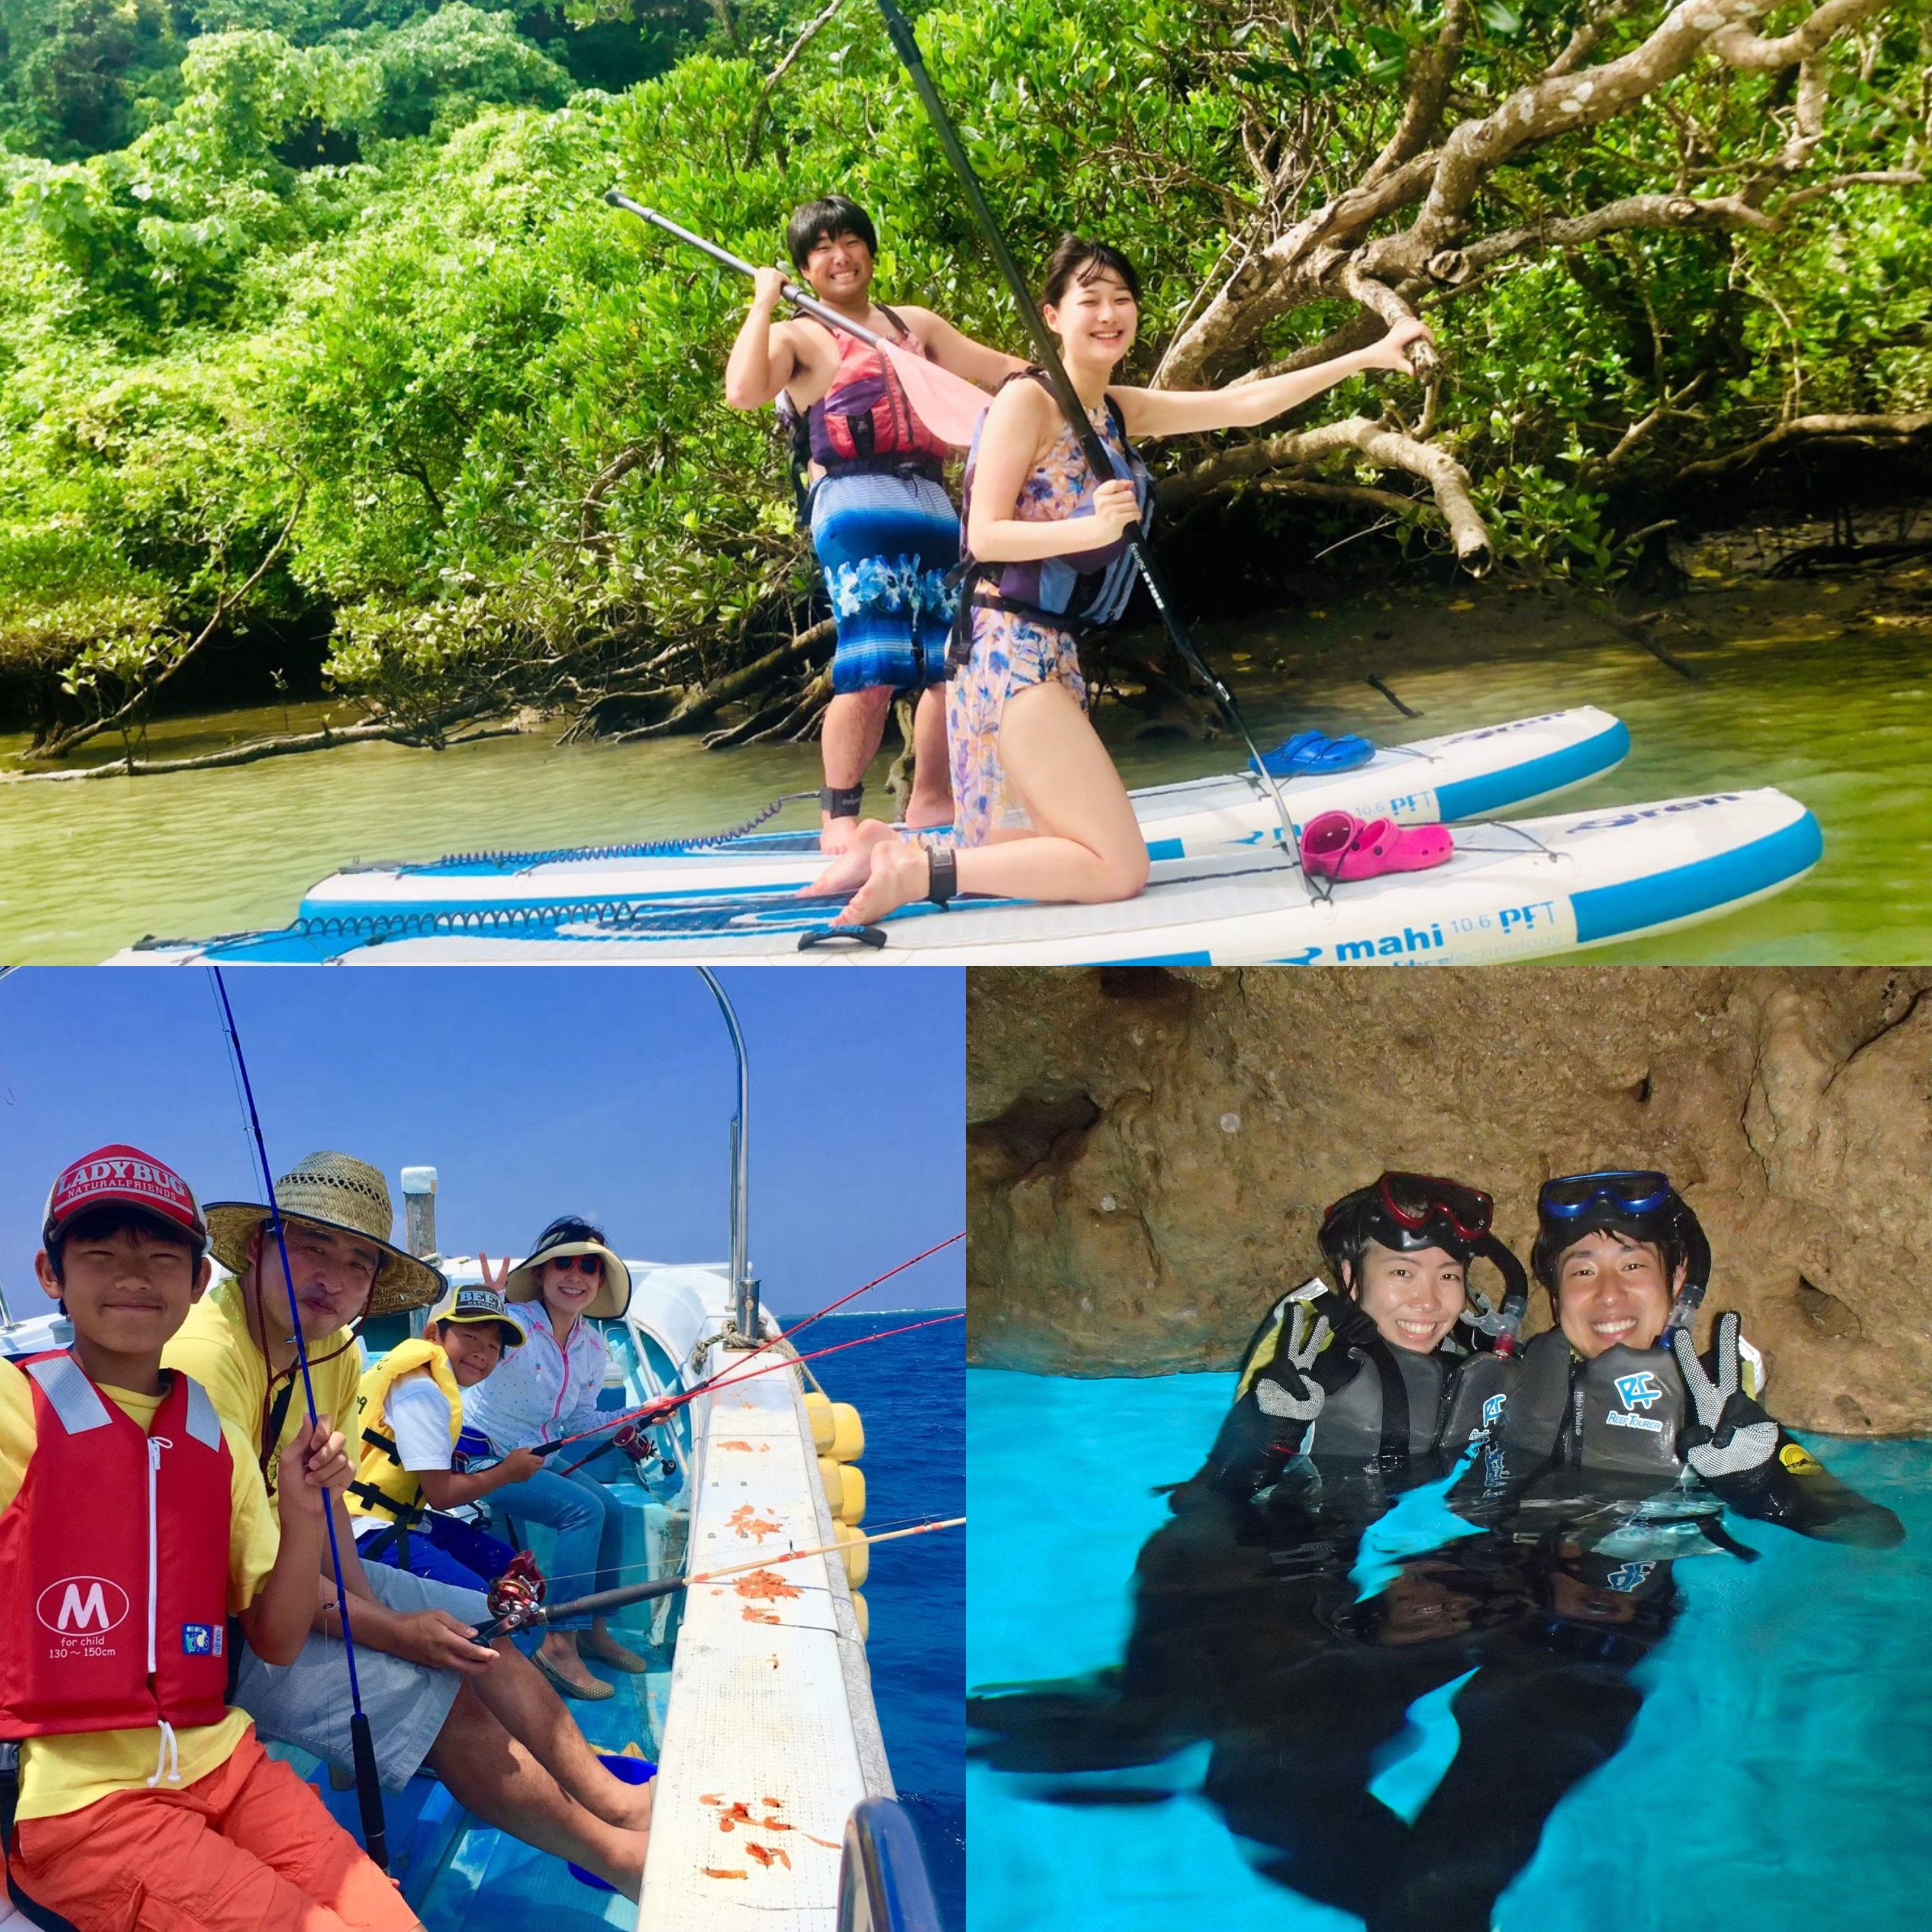 【OTS Special Offer】Wow!1 day tour with this price?! SUP+Fishing+Blue Cave package tour!!